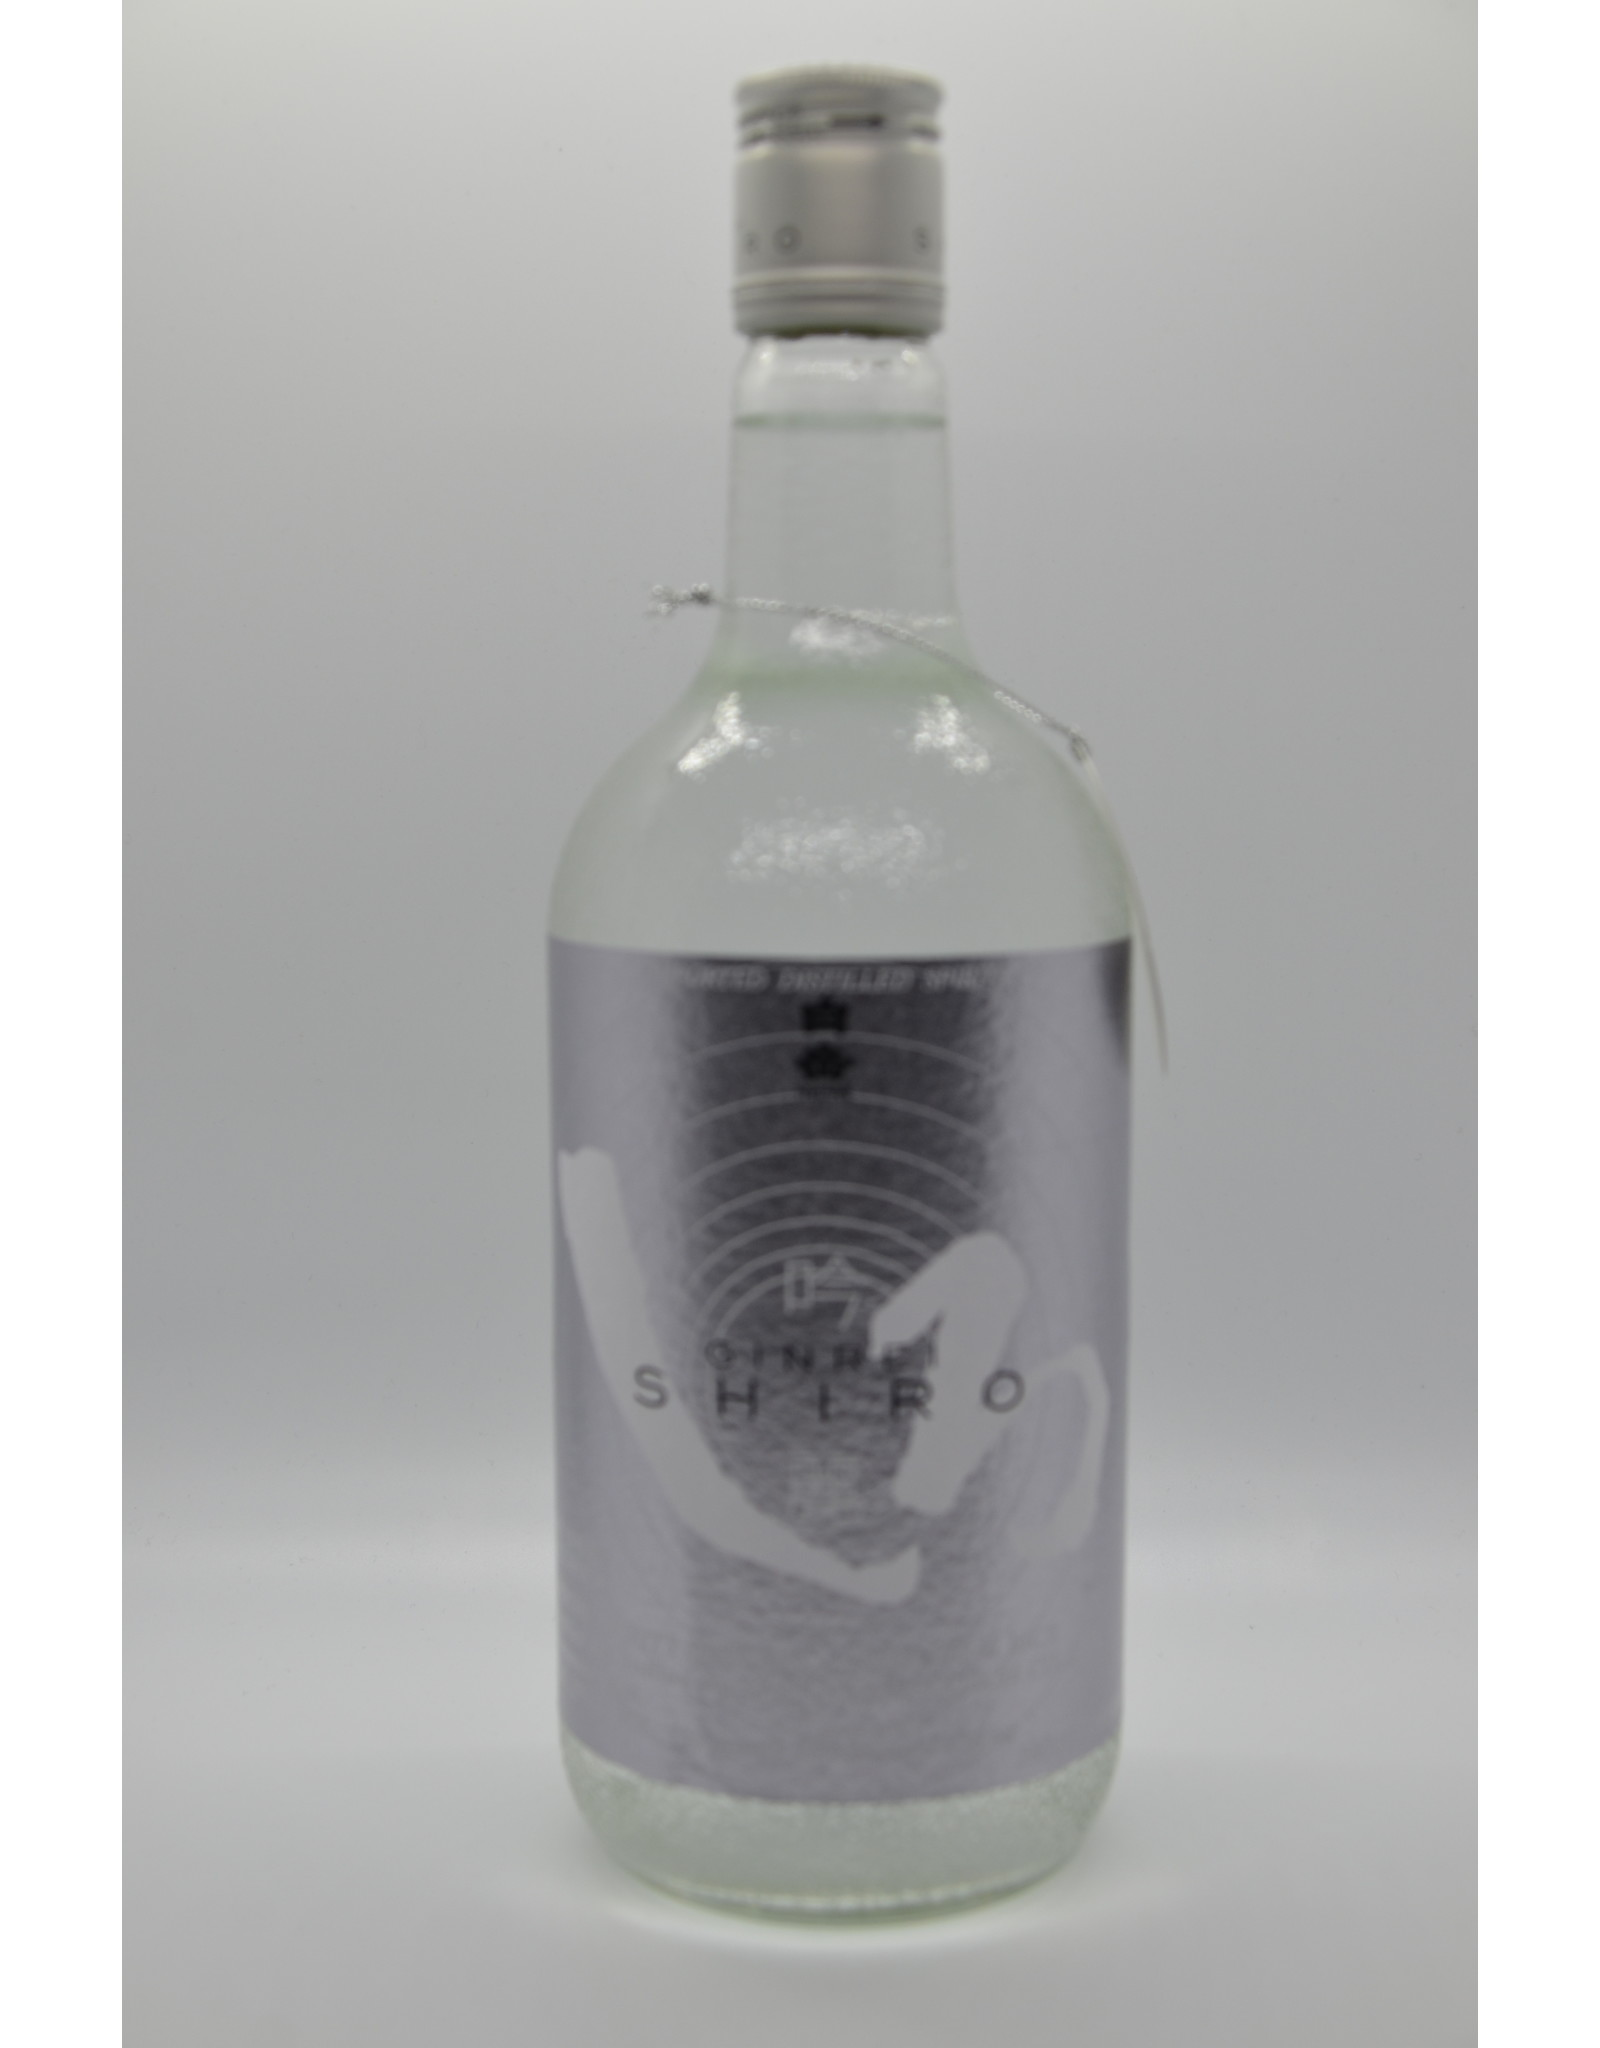 Japan Ginrei Shiro Shochu 750ml